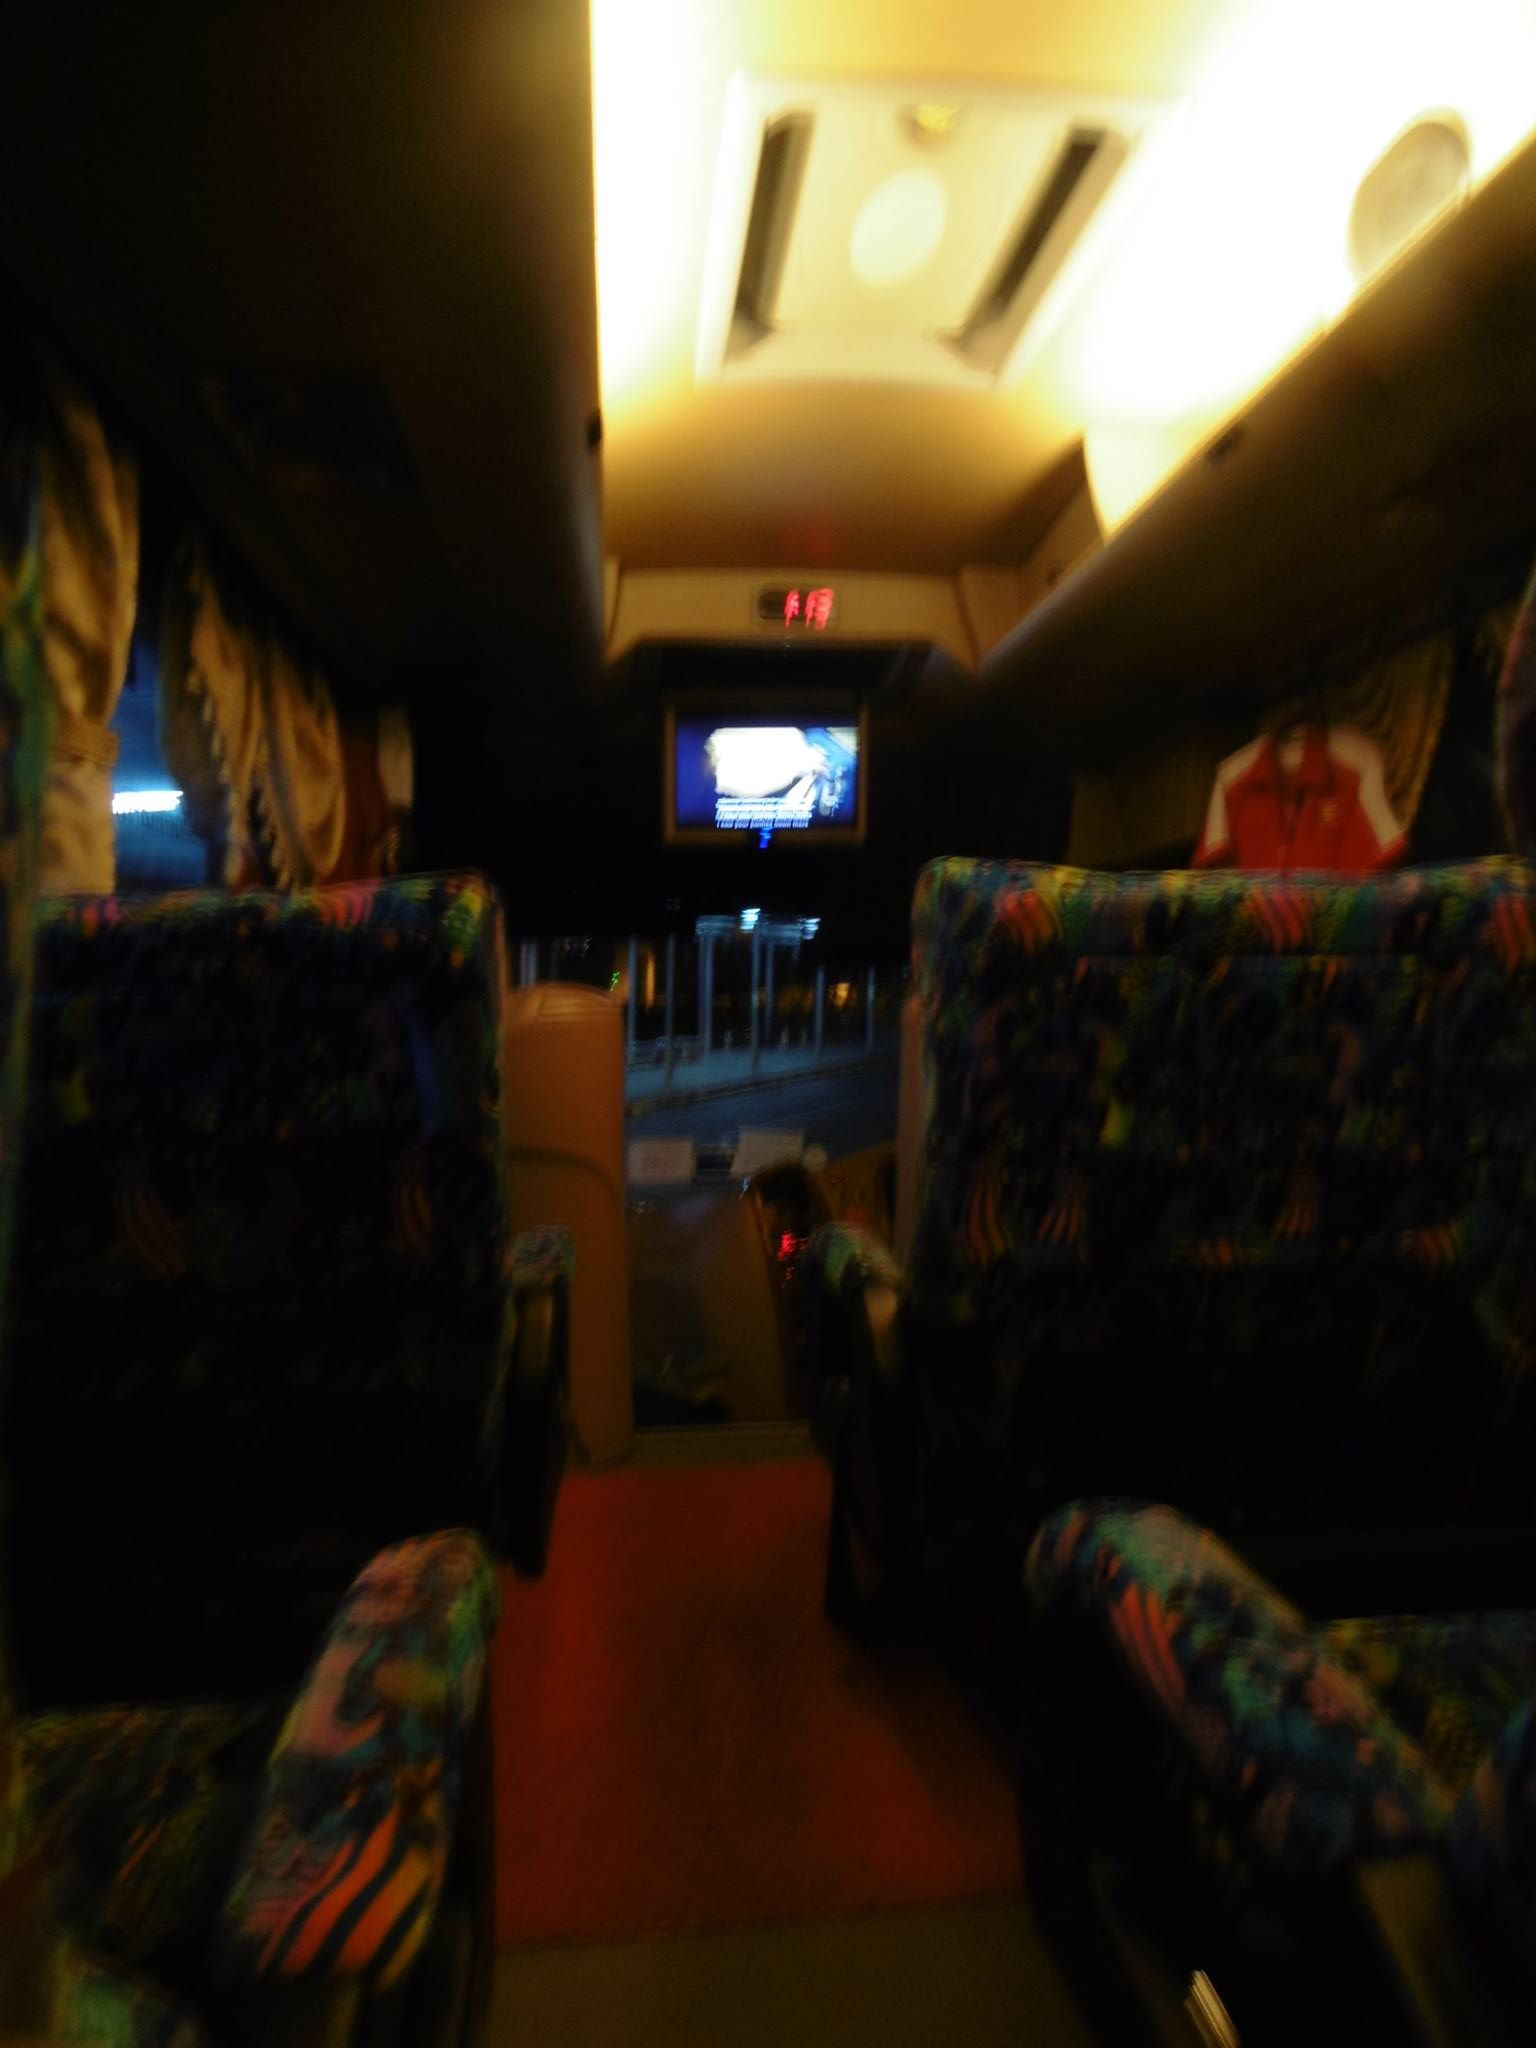 A blurry image from the night bus to Kuala Lumpur from Singapore.